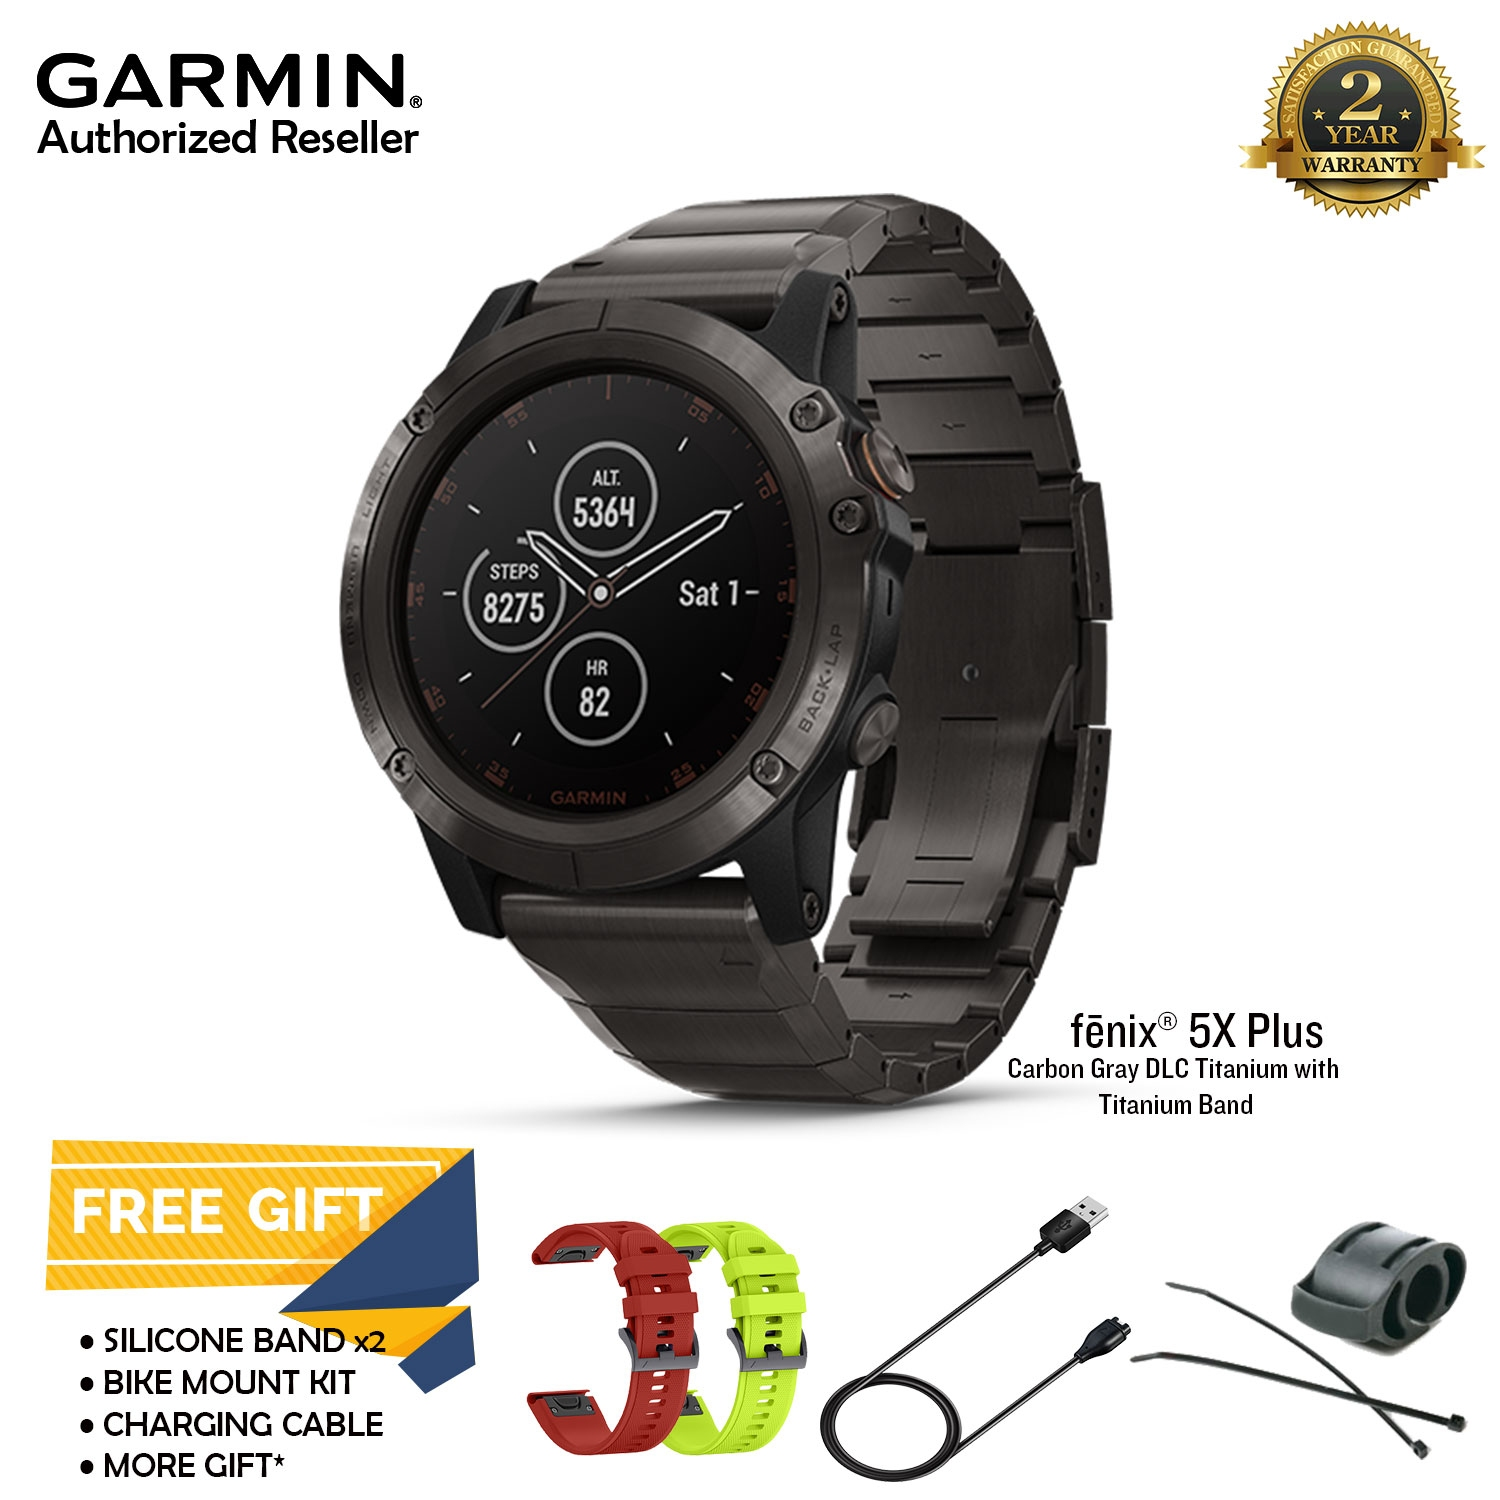 Garmin Fenix 5X Plus Gray DLC Titanium with Titanium Band Multisport G